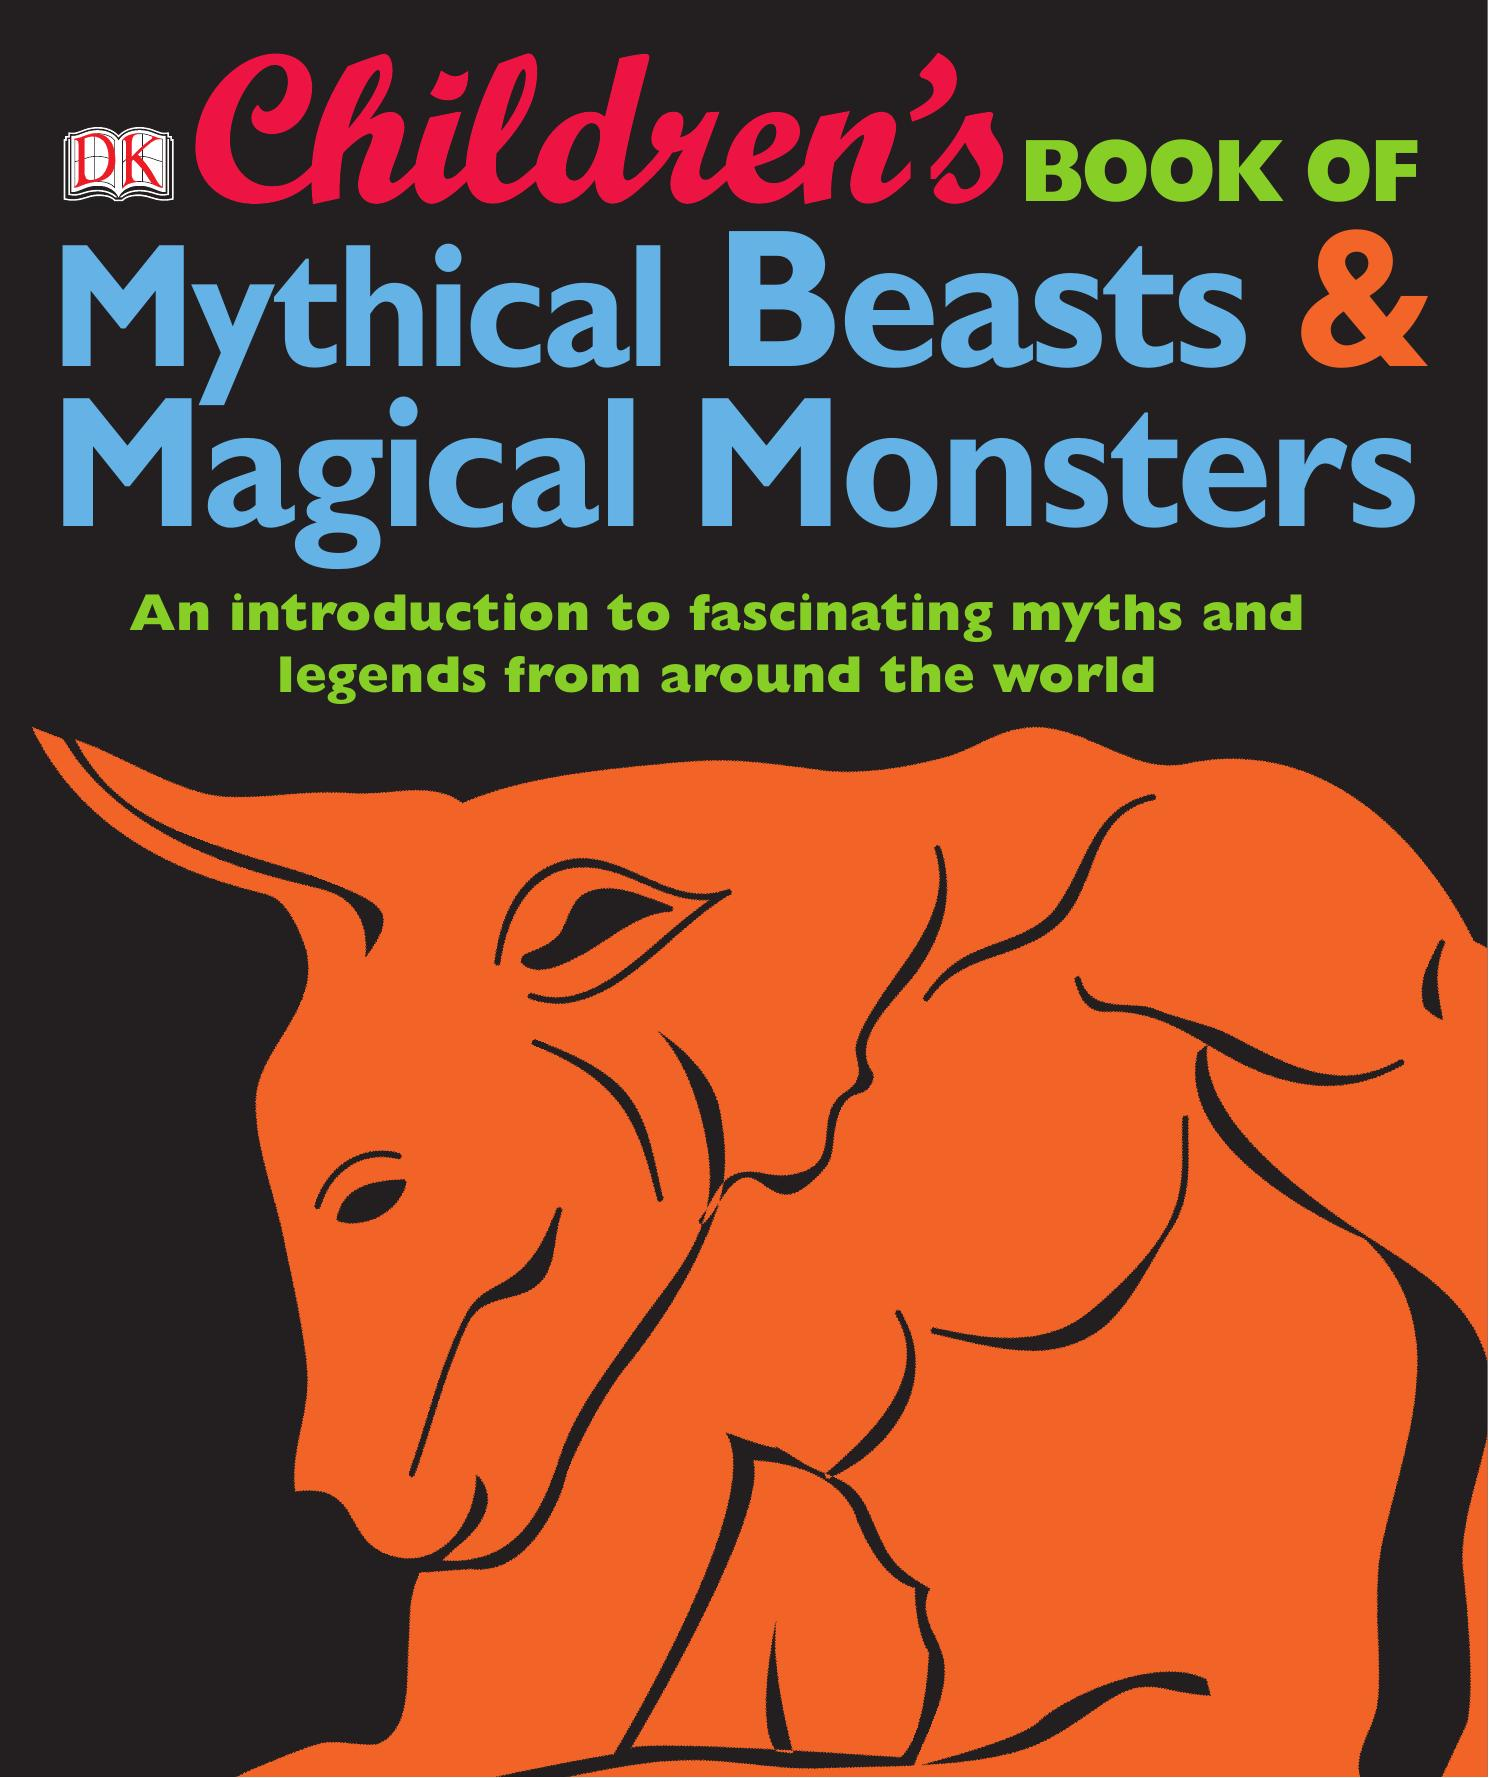 Children's Book of Mythical Beasts & Magical Monsters PDF